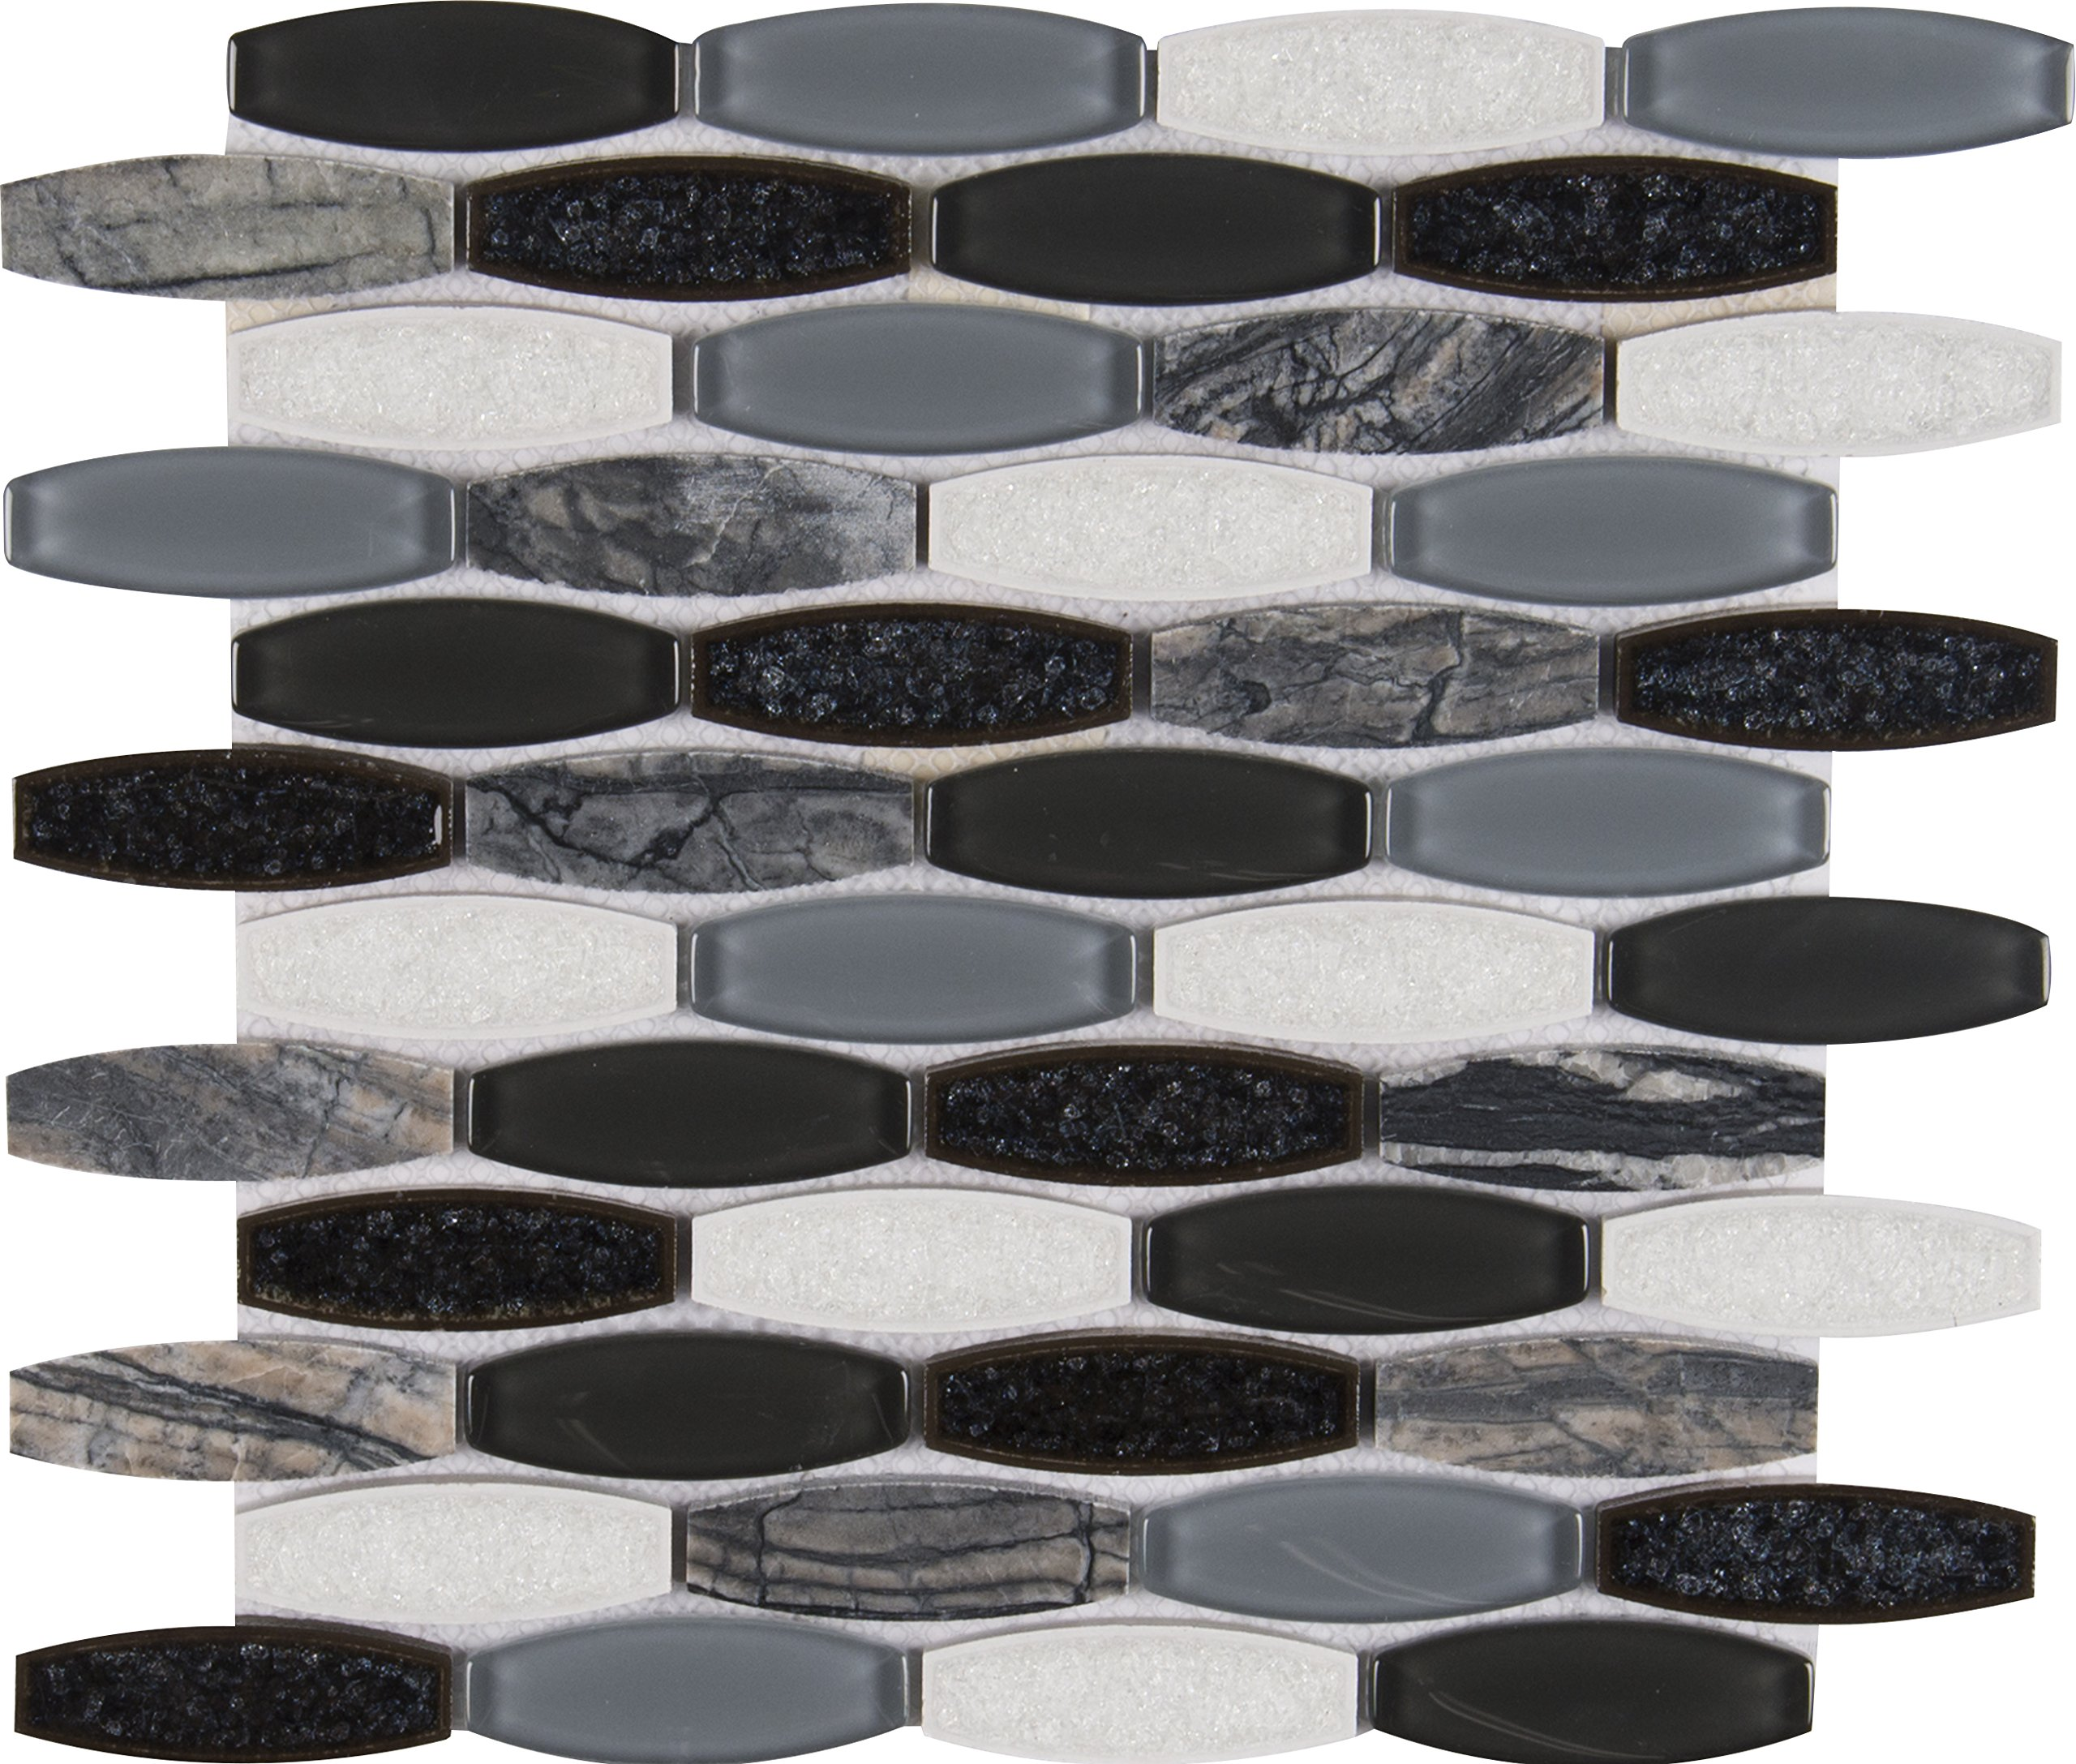 M S International Haley Gris 11.41 In. X 12 In. X 8 mm Glass Stone Mesh-Mounted Mosaic Tile, (9.5 sq. ft., 10 pieces per case)